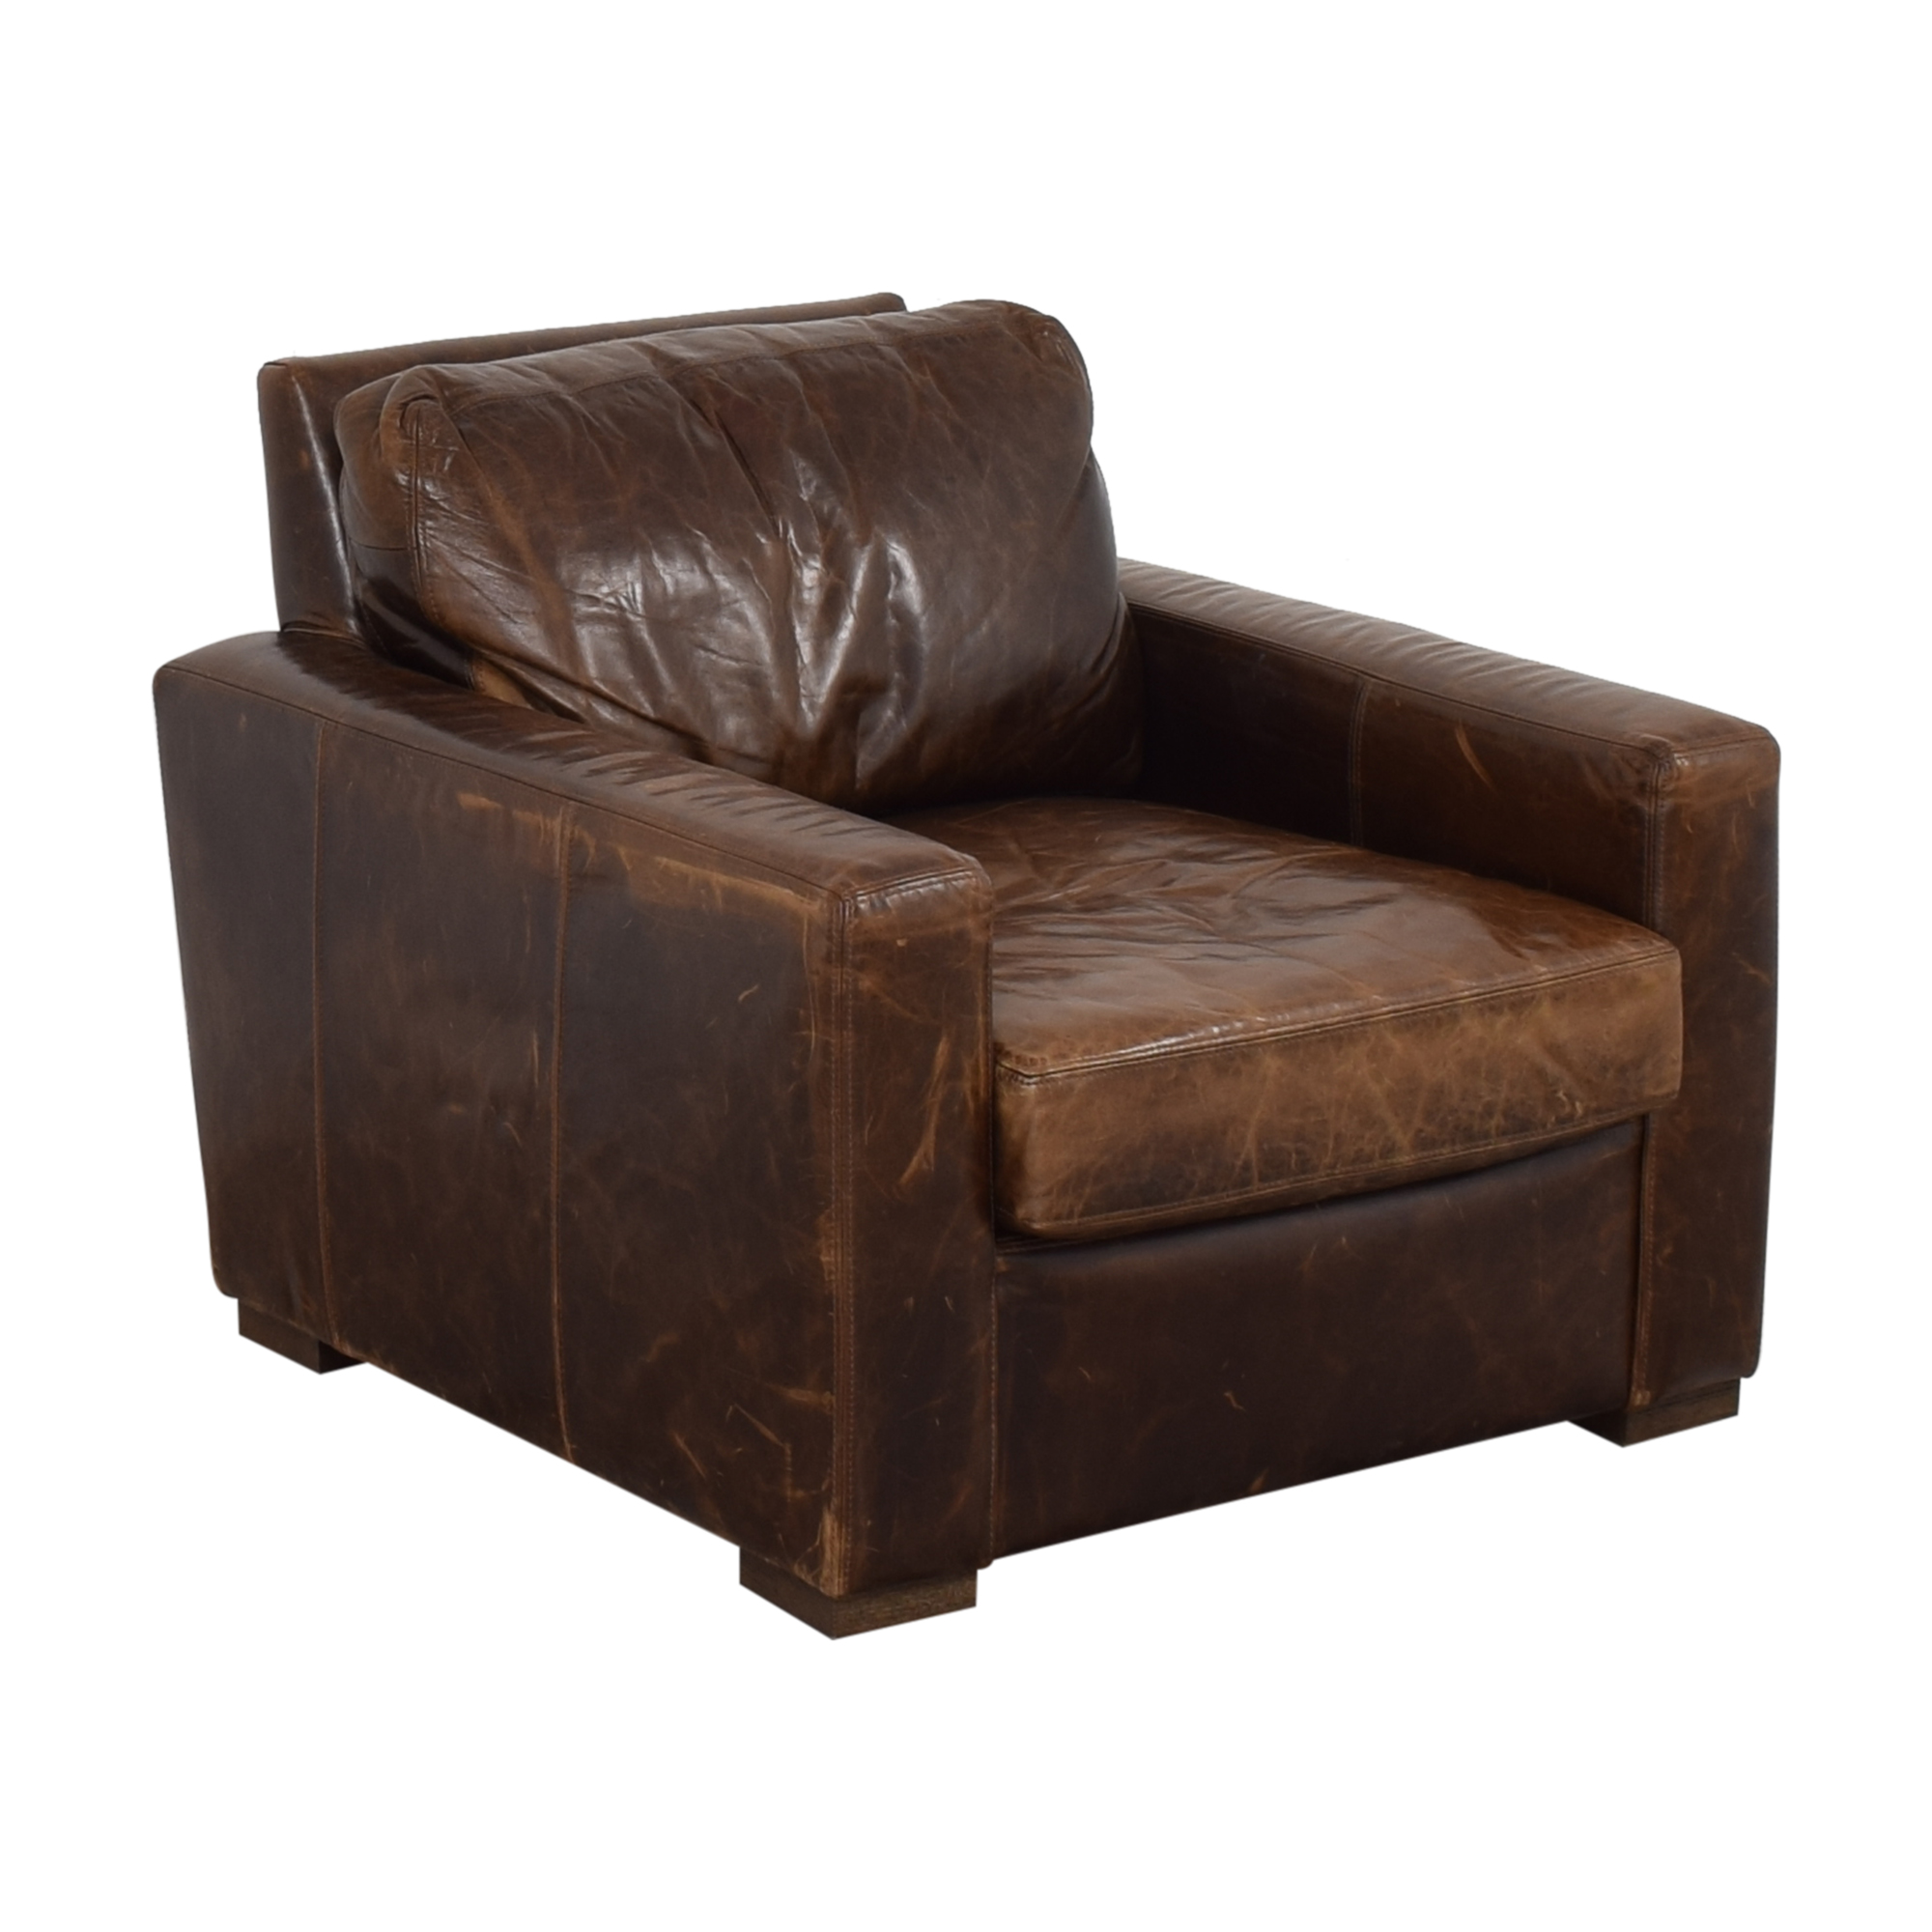 Restoration Hardware Restoration Hardware Petite Maxwell Chair and Ottoman Chairs